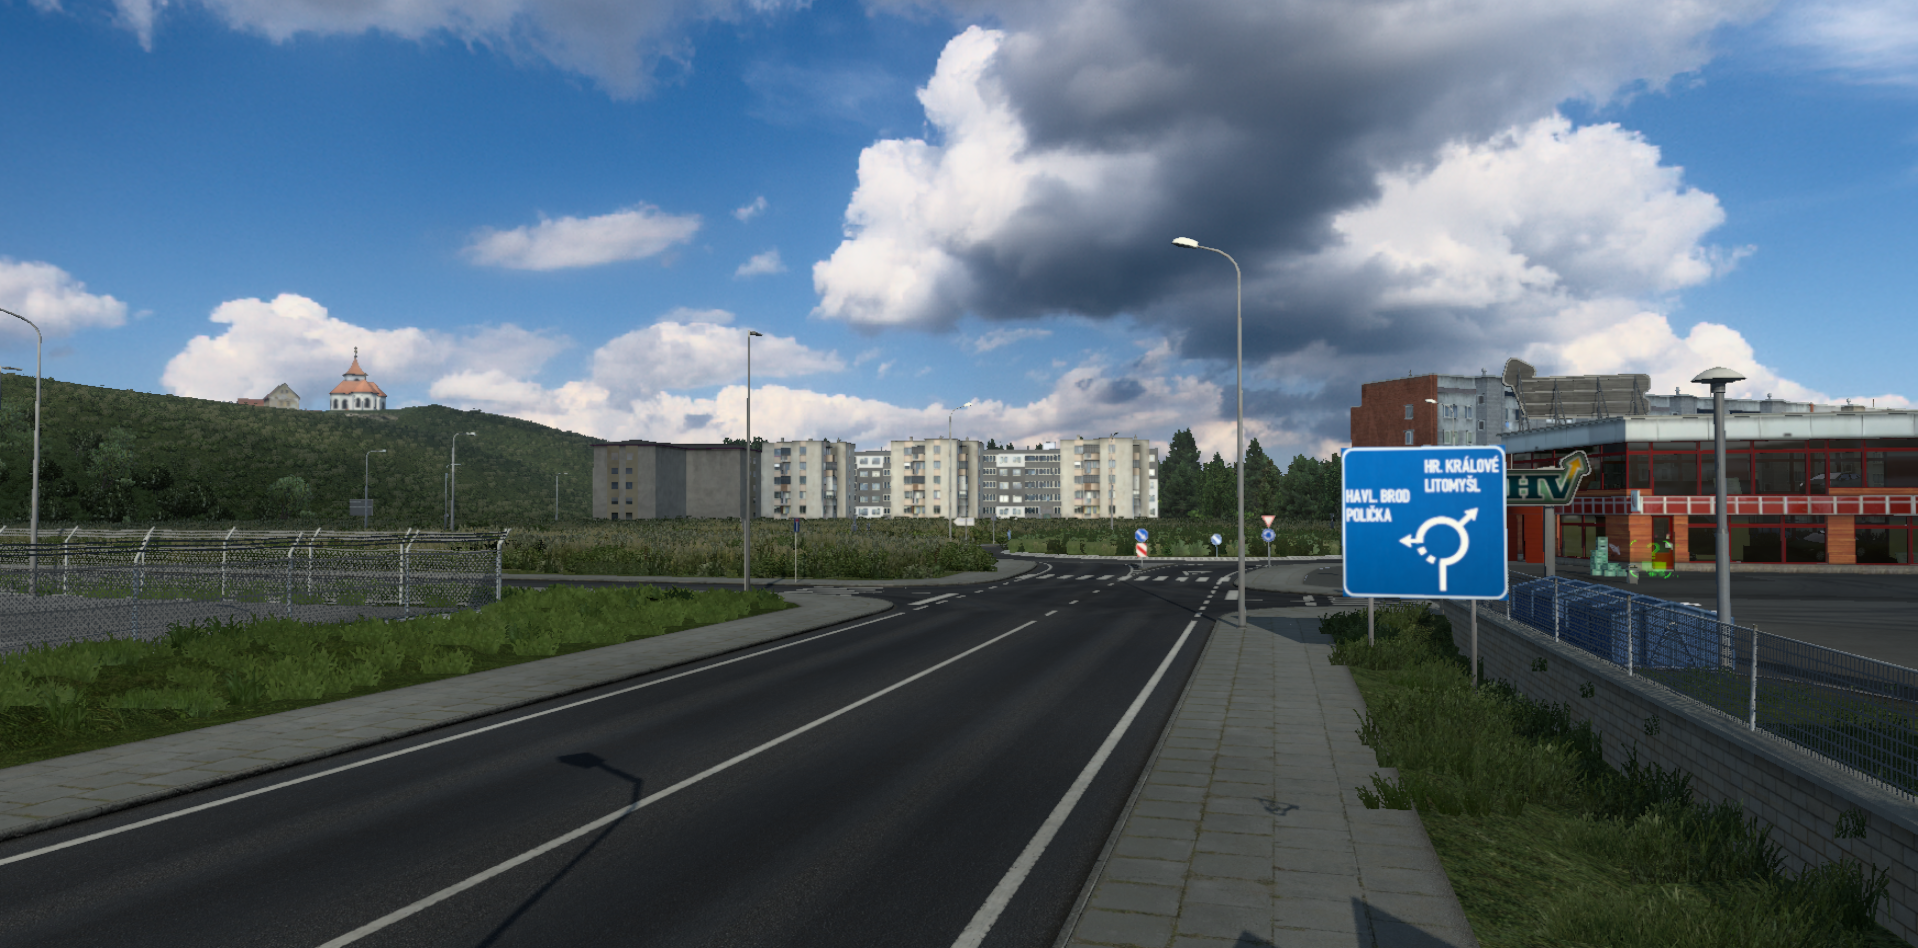 ets2_20210606_172715_00.png